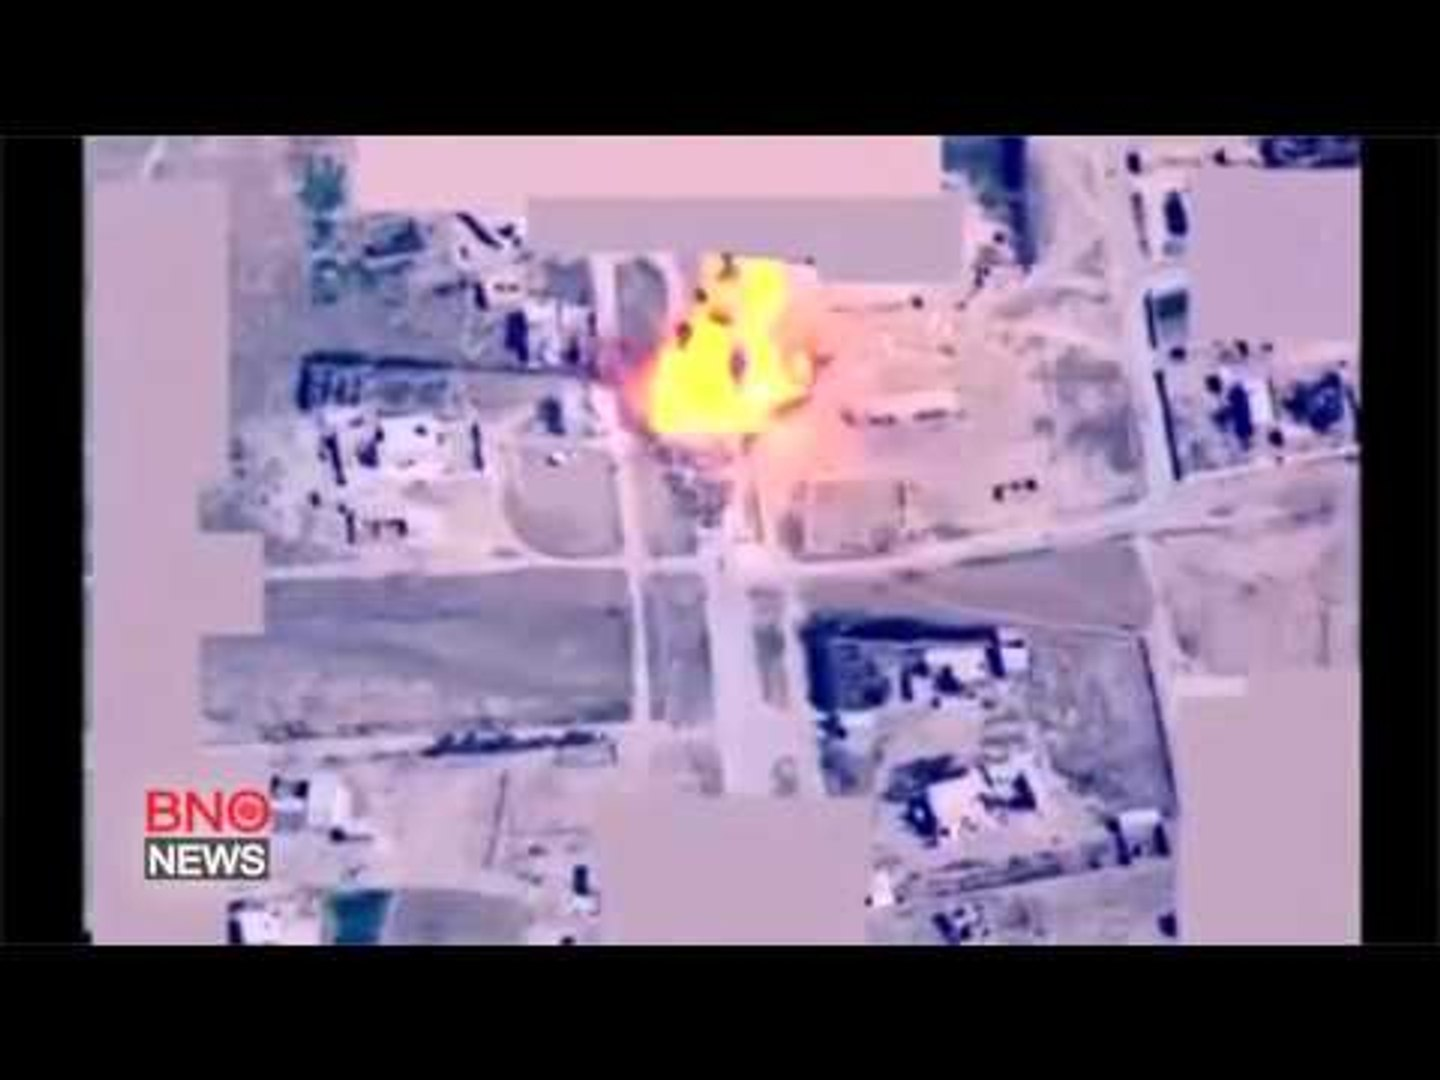 RAW: Video purports to show coalition air strike destroying ISIS vehicle